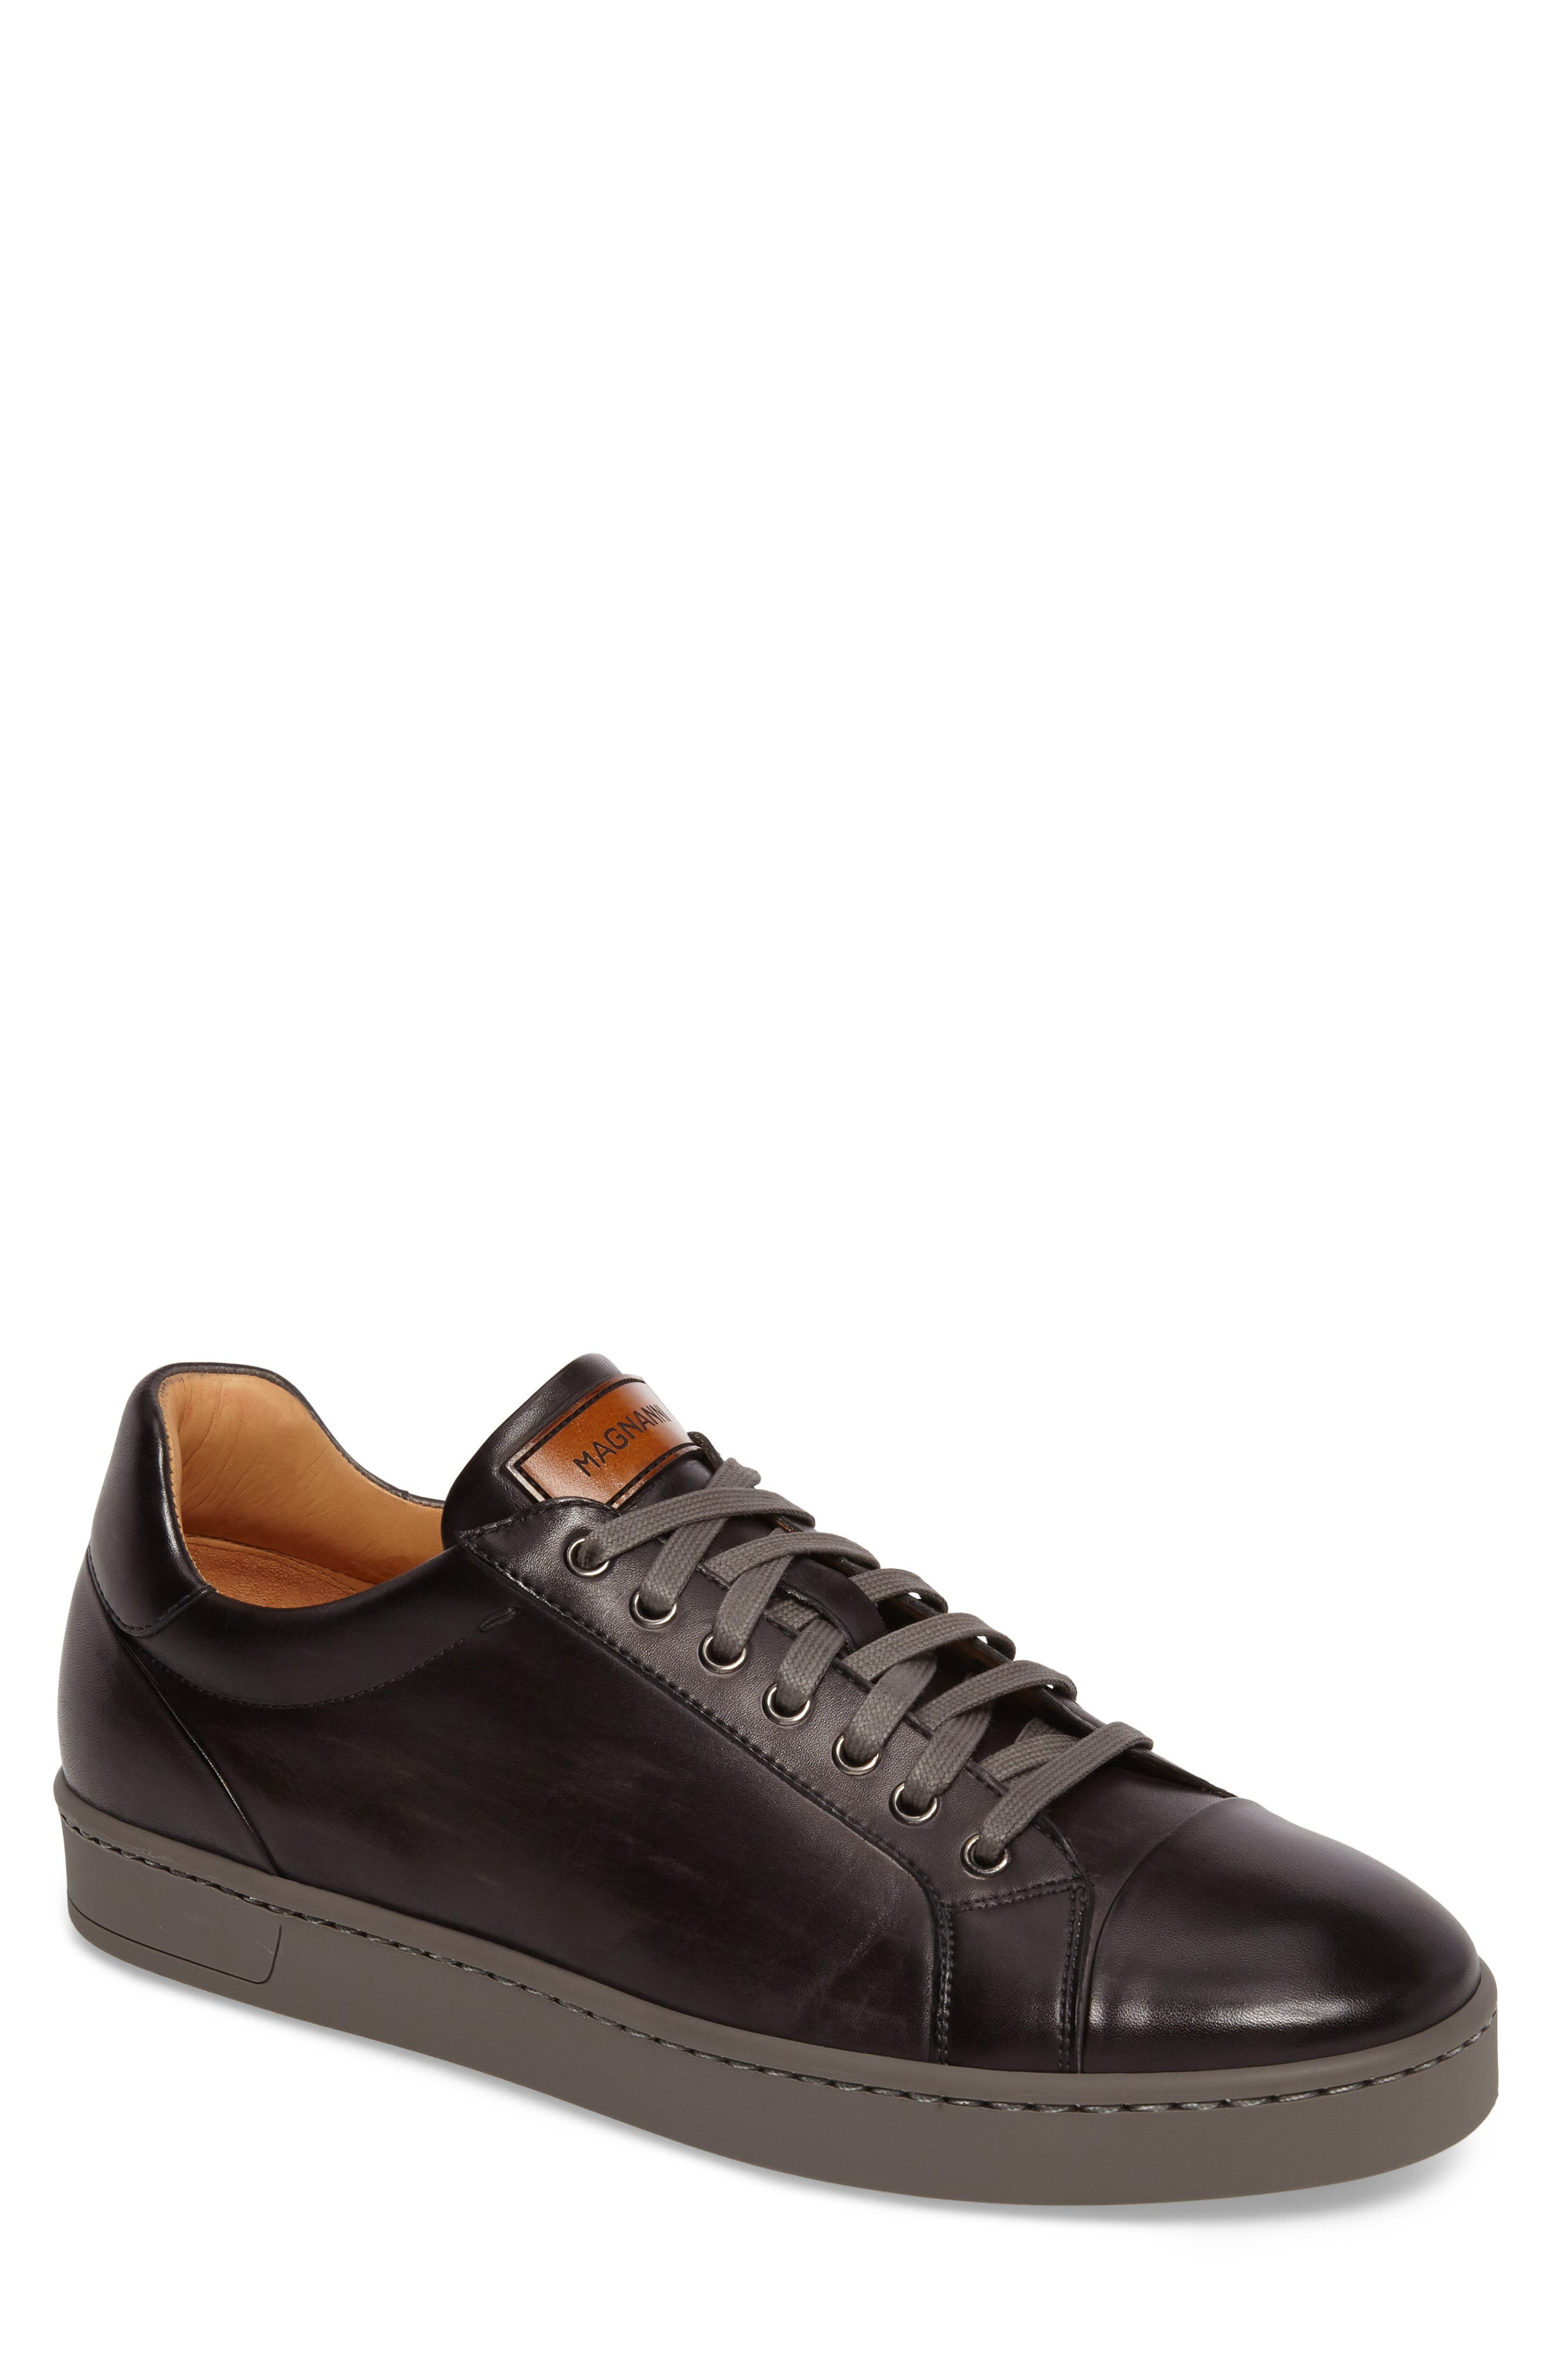 Caitin Sneaker,                         Main,                         color, Grey Leather